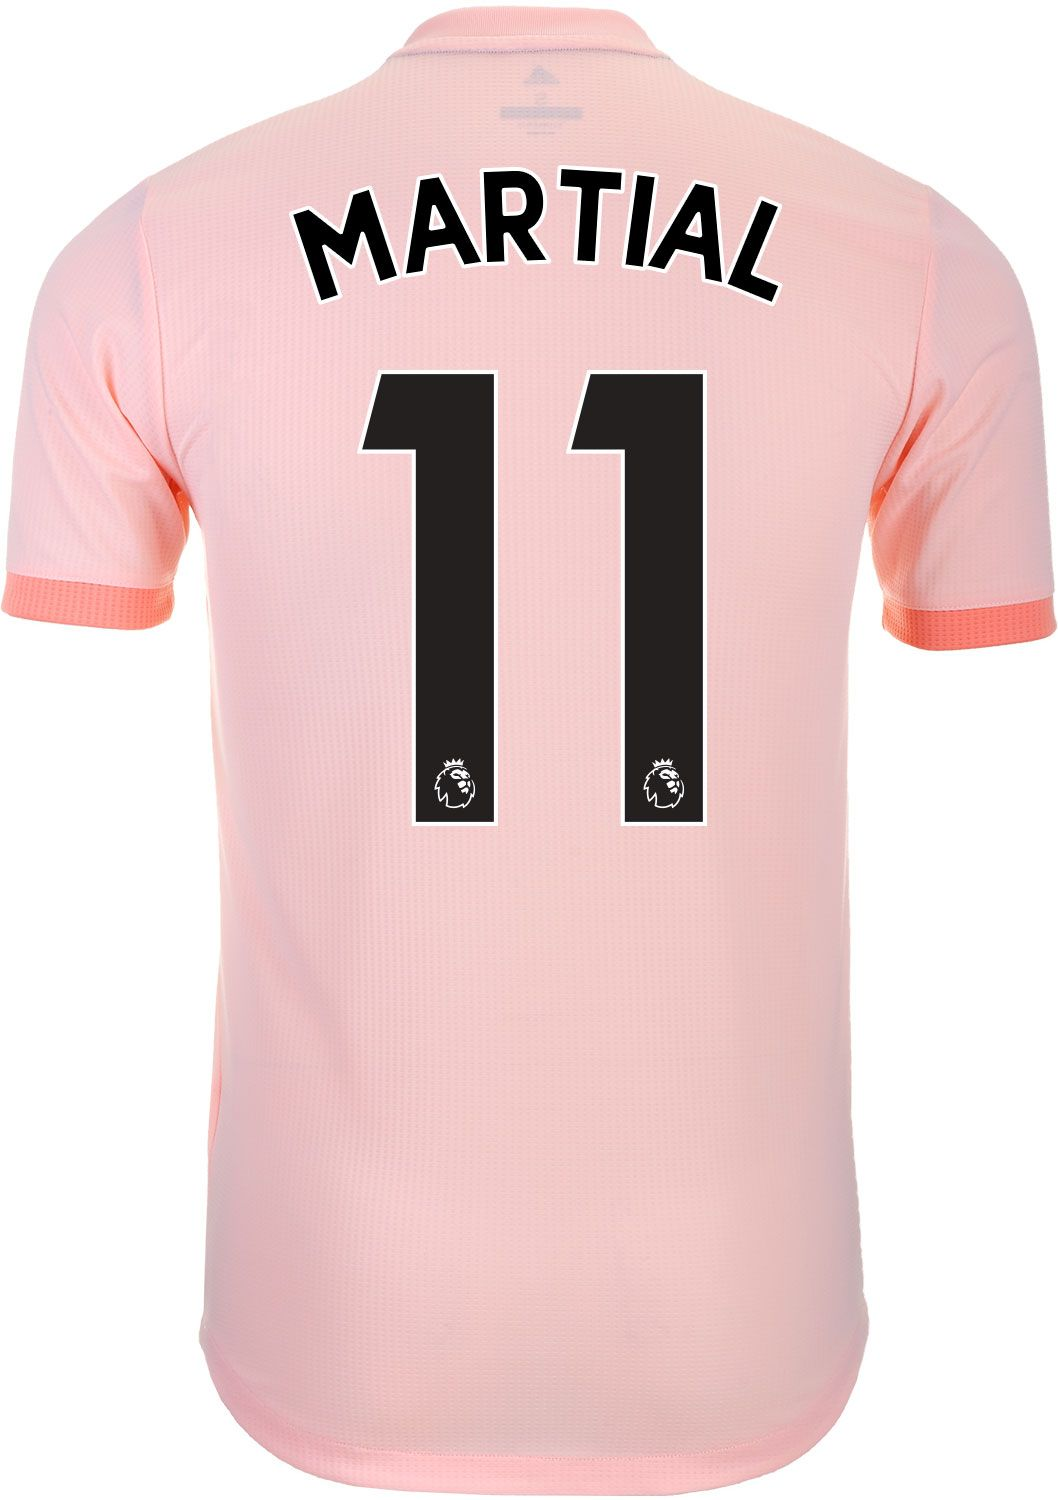 Shop for the 2018 19 adidas Martial Manchester United authentic away jersey  from www.soccerpro.com a9bd47b85